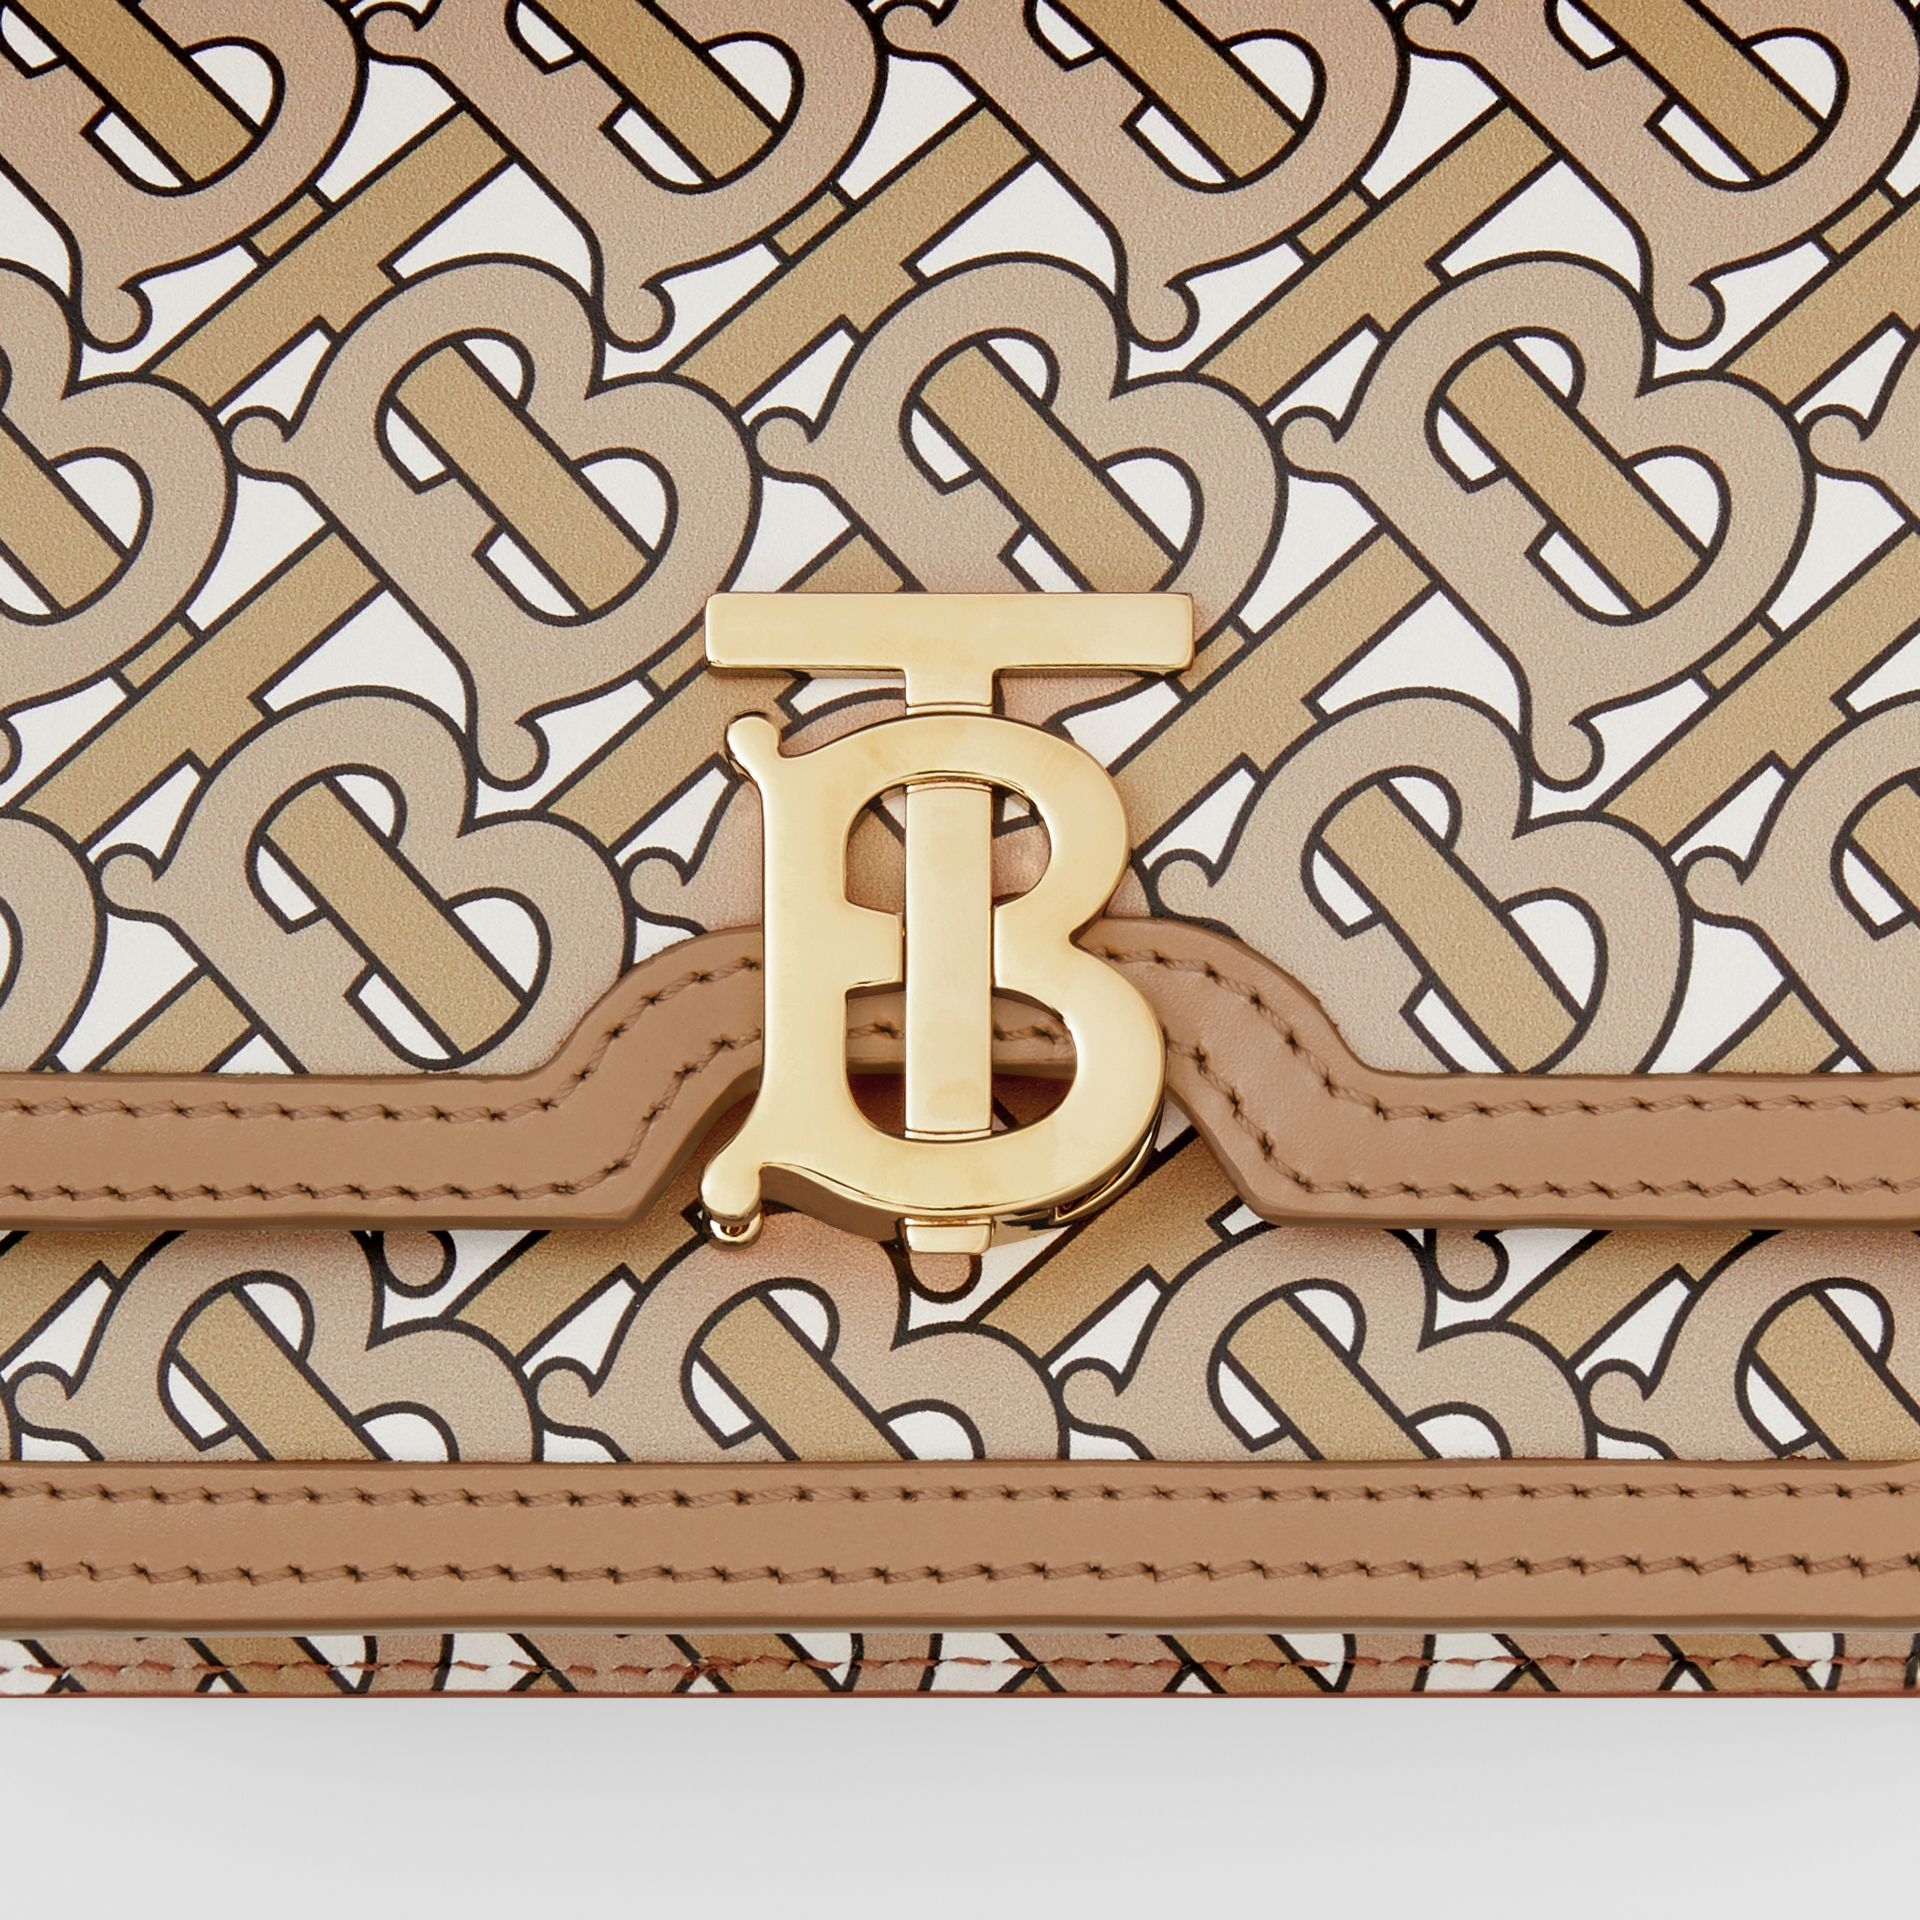 Mini Monogram Print Leather TB Bag in Beige - Women | Burberry Canada - gallery image 1